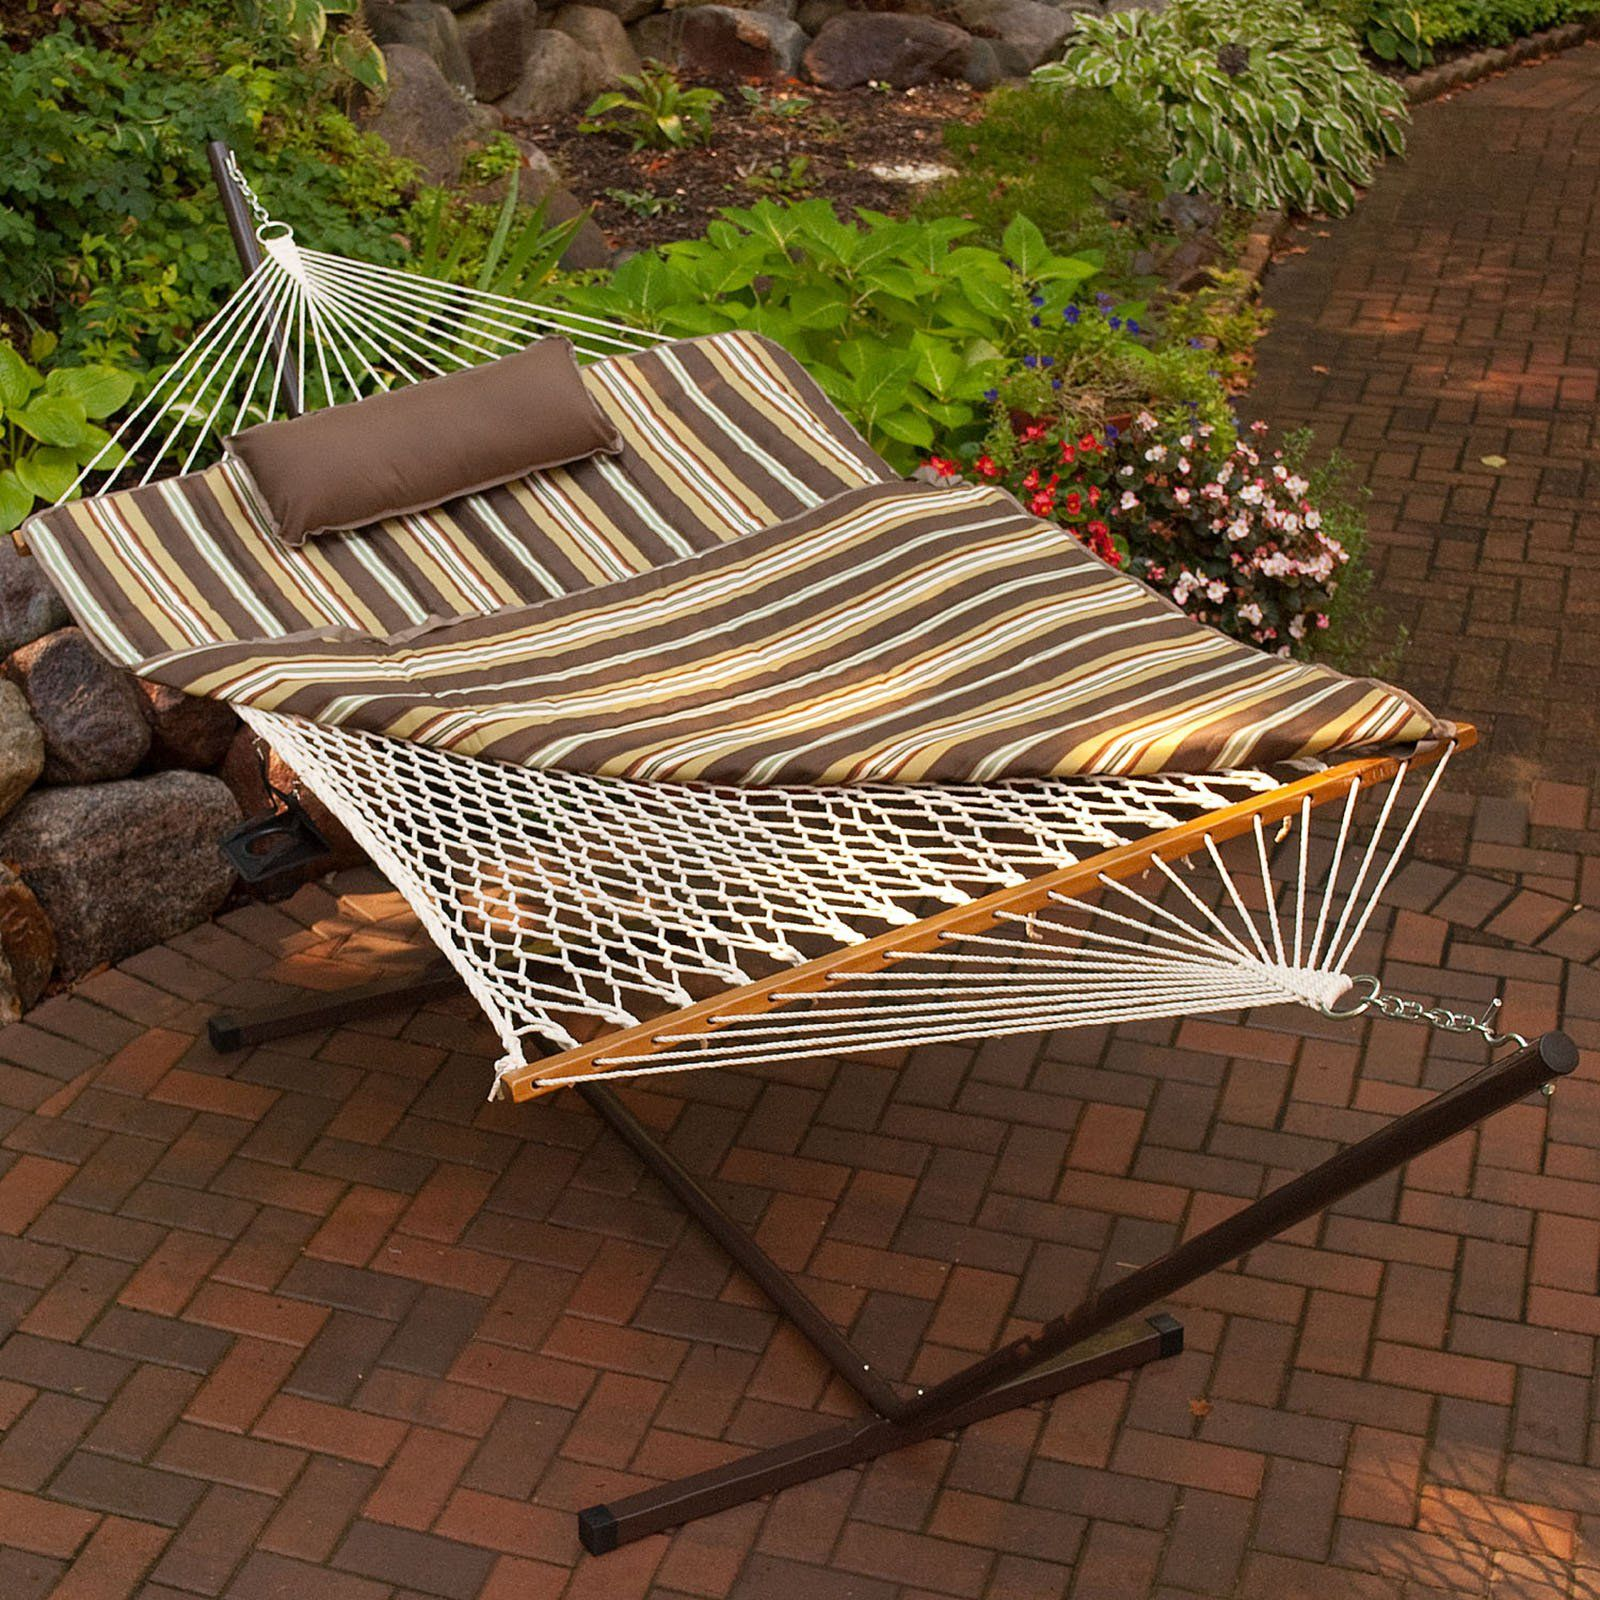 120 Algoma 11 Ft Cotton Rope Hammock Metal Stand Set Hammock And Stand Sets At Hayneedle With Images Hammock Pad Rope Hammock Relaxing Backyard